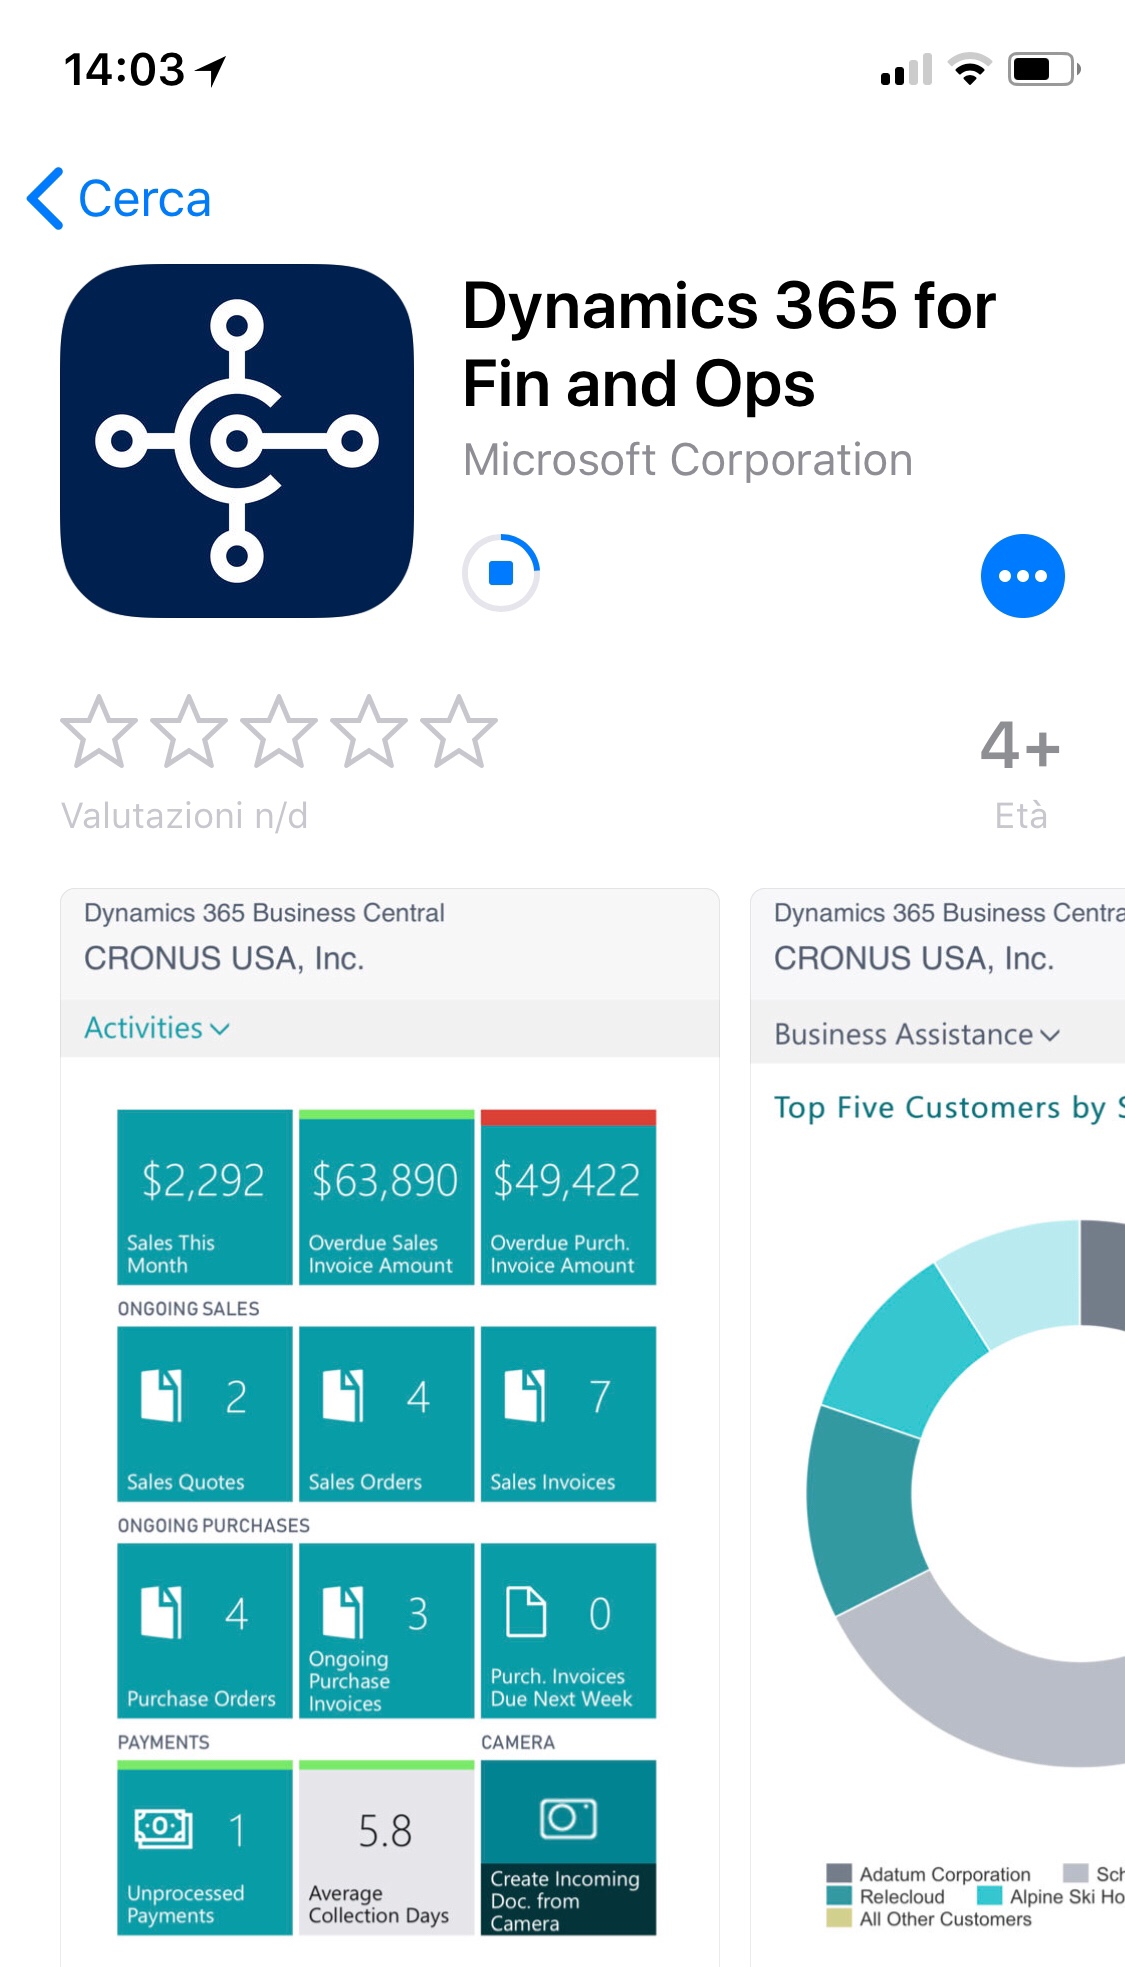 Dynamics 365 Business Central iOS app: few details to fix